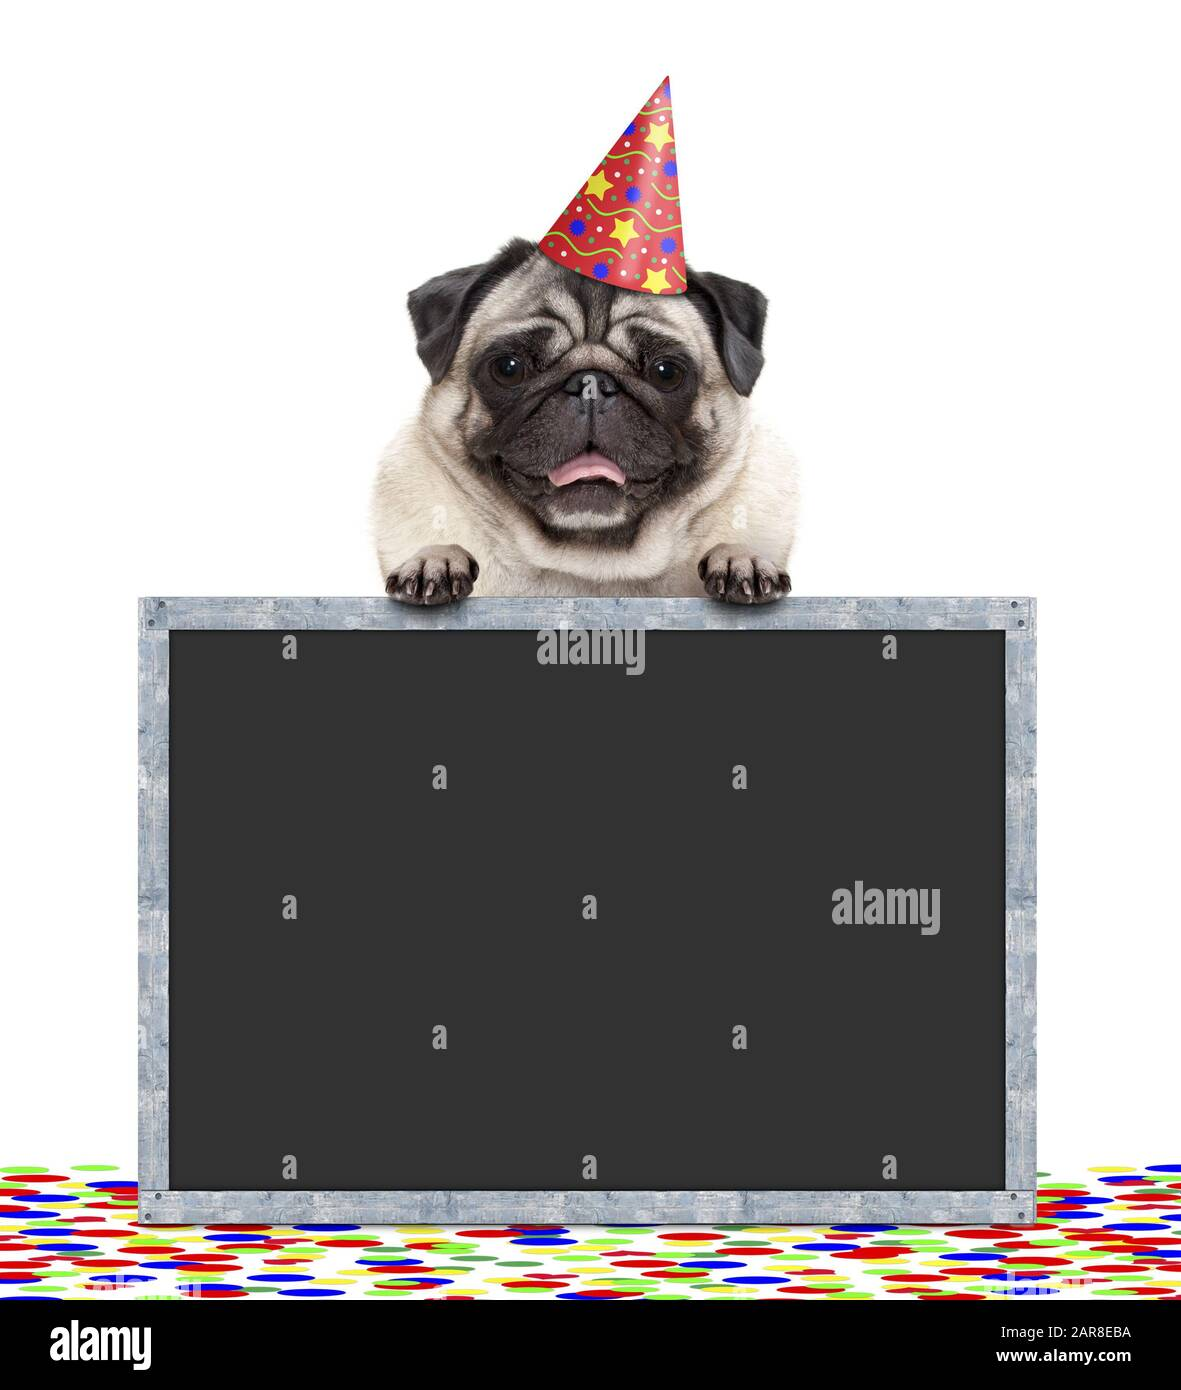 frolic smiling birthday party pug dog with hat and confetti and paws on blackboard sign, isolated on white background Stock Photo